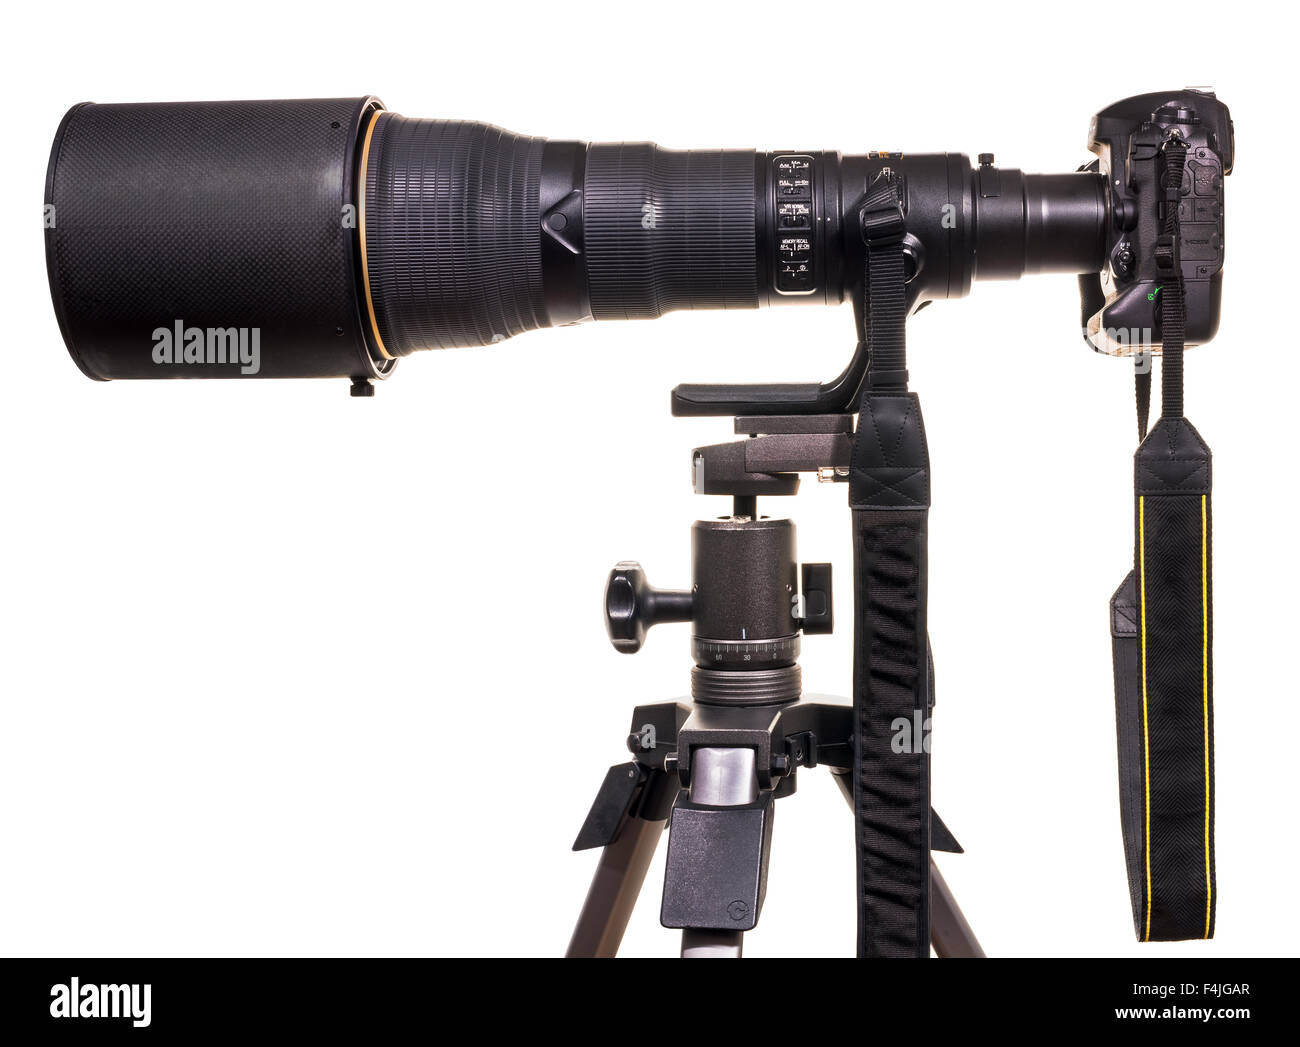 800mm lens on DSLR camera full format. Tripod. Photographing telephoto equipment, distance to overcome, big, heavy, - Stock Image